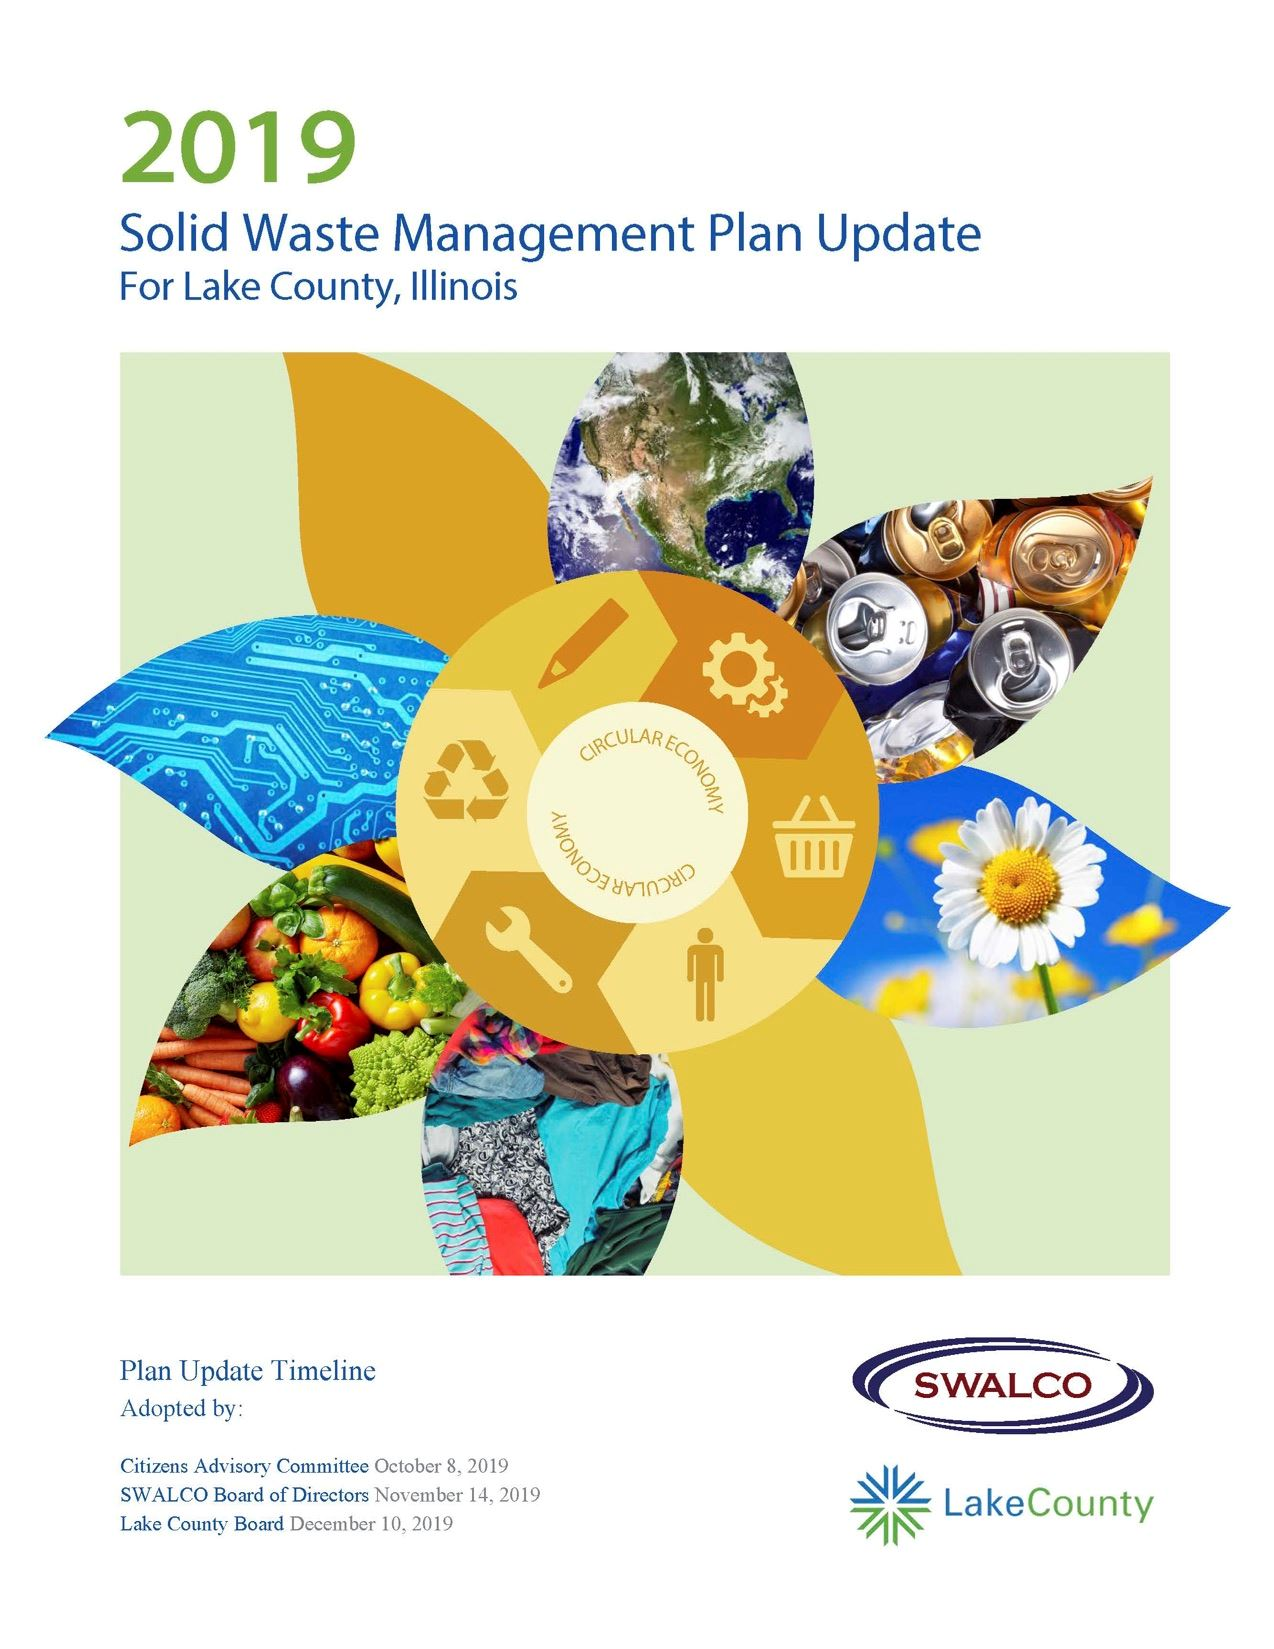 2019 Lake County Solid Waste Management Plan Update